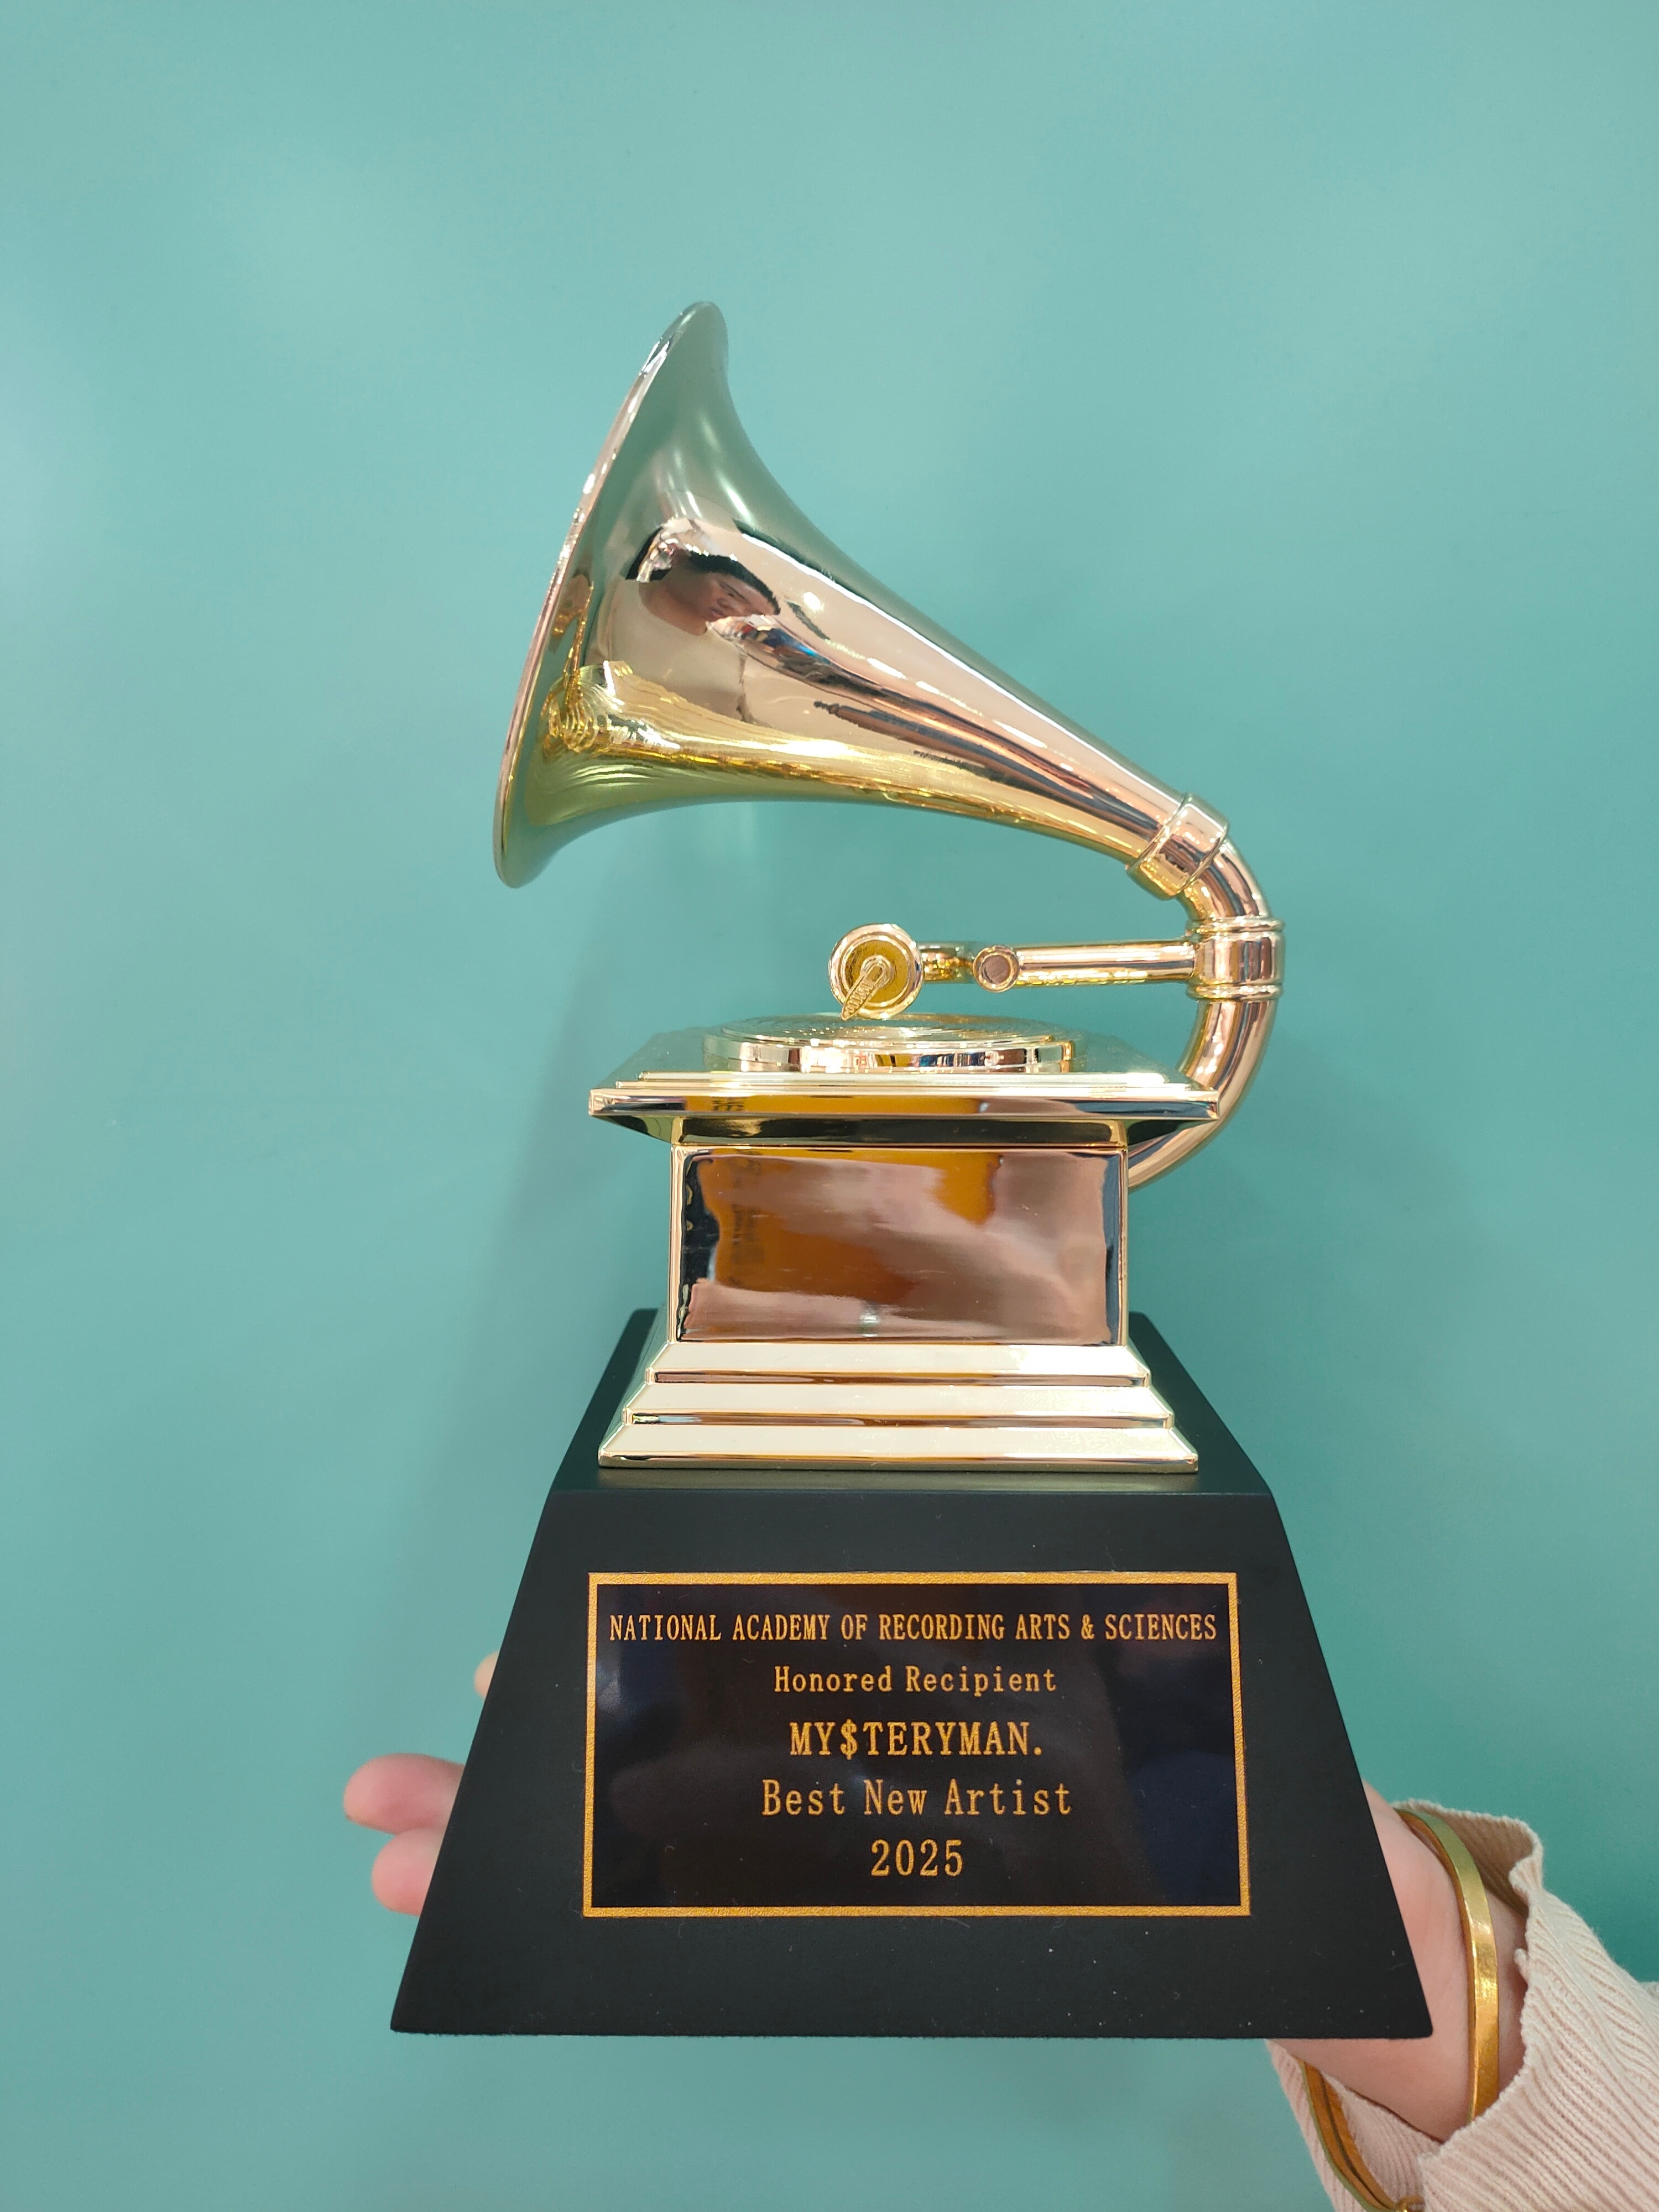 THE GRAMMYS Awards Gramophone Metal Trophy by NARAS Nice Gift Souvenir Collections Free Lettering